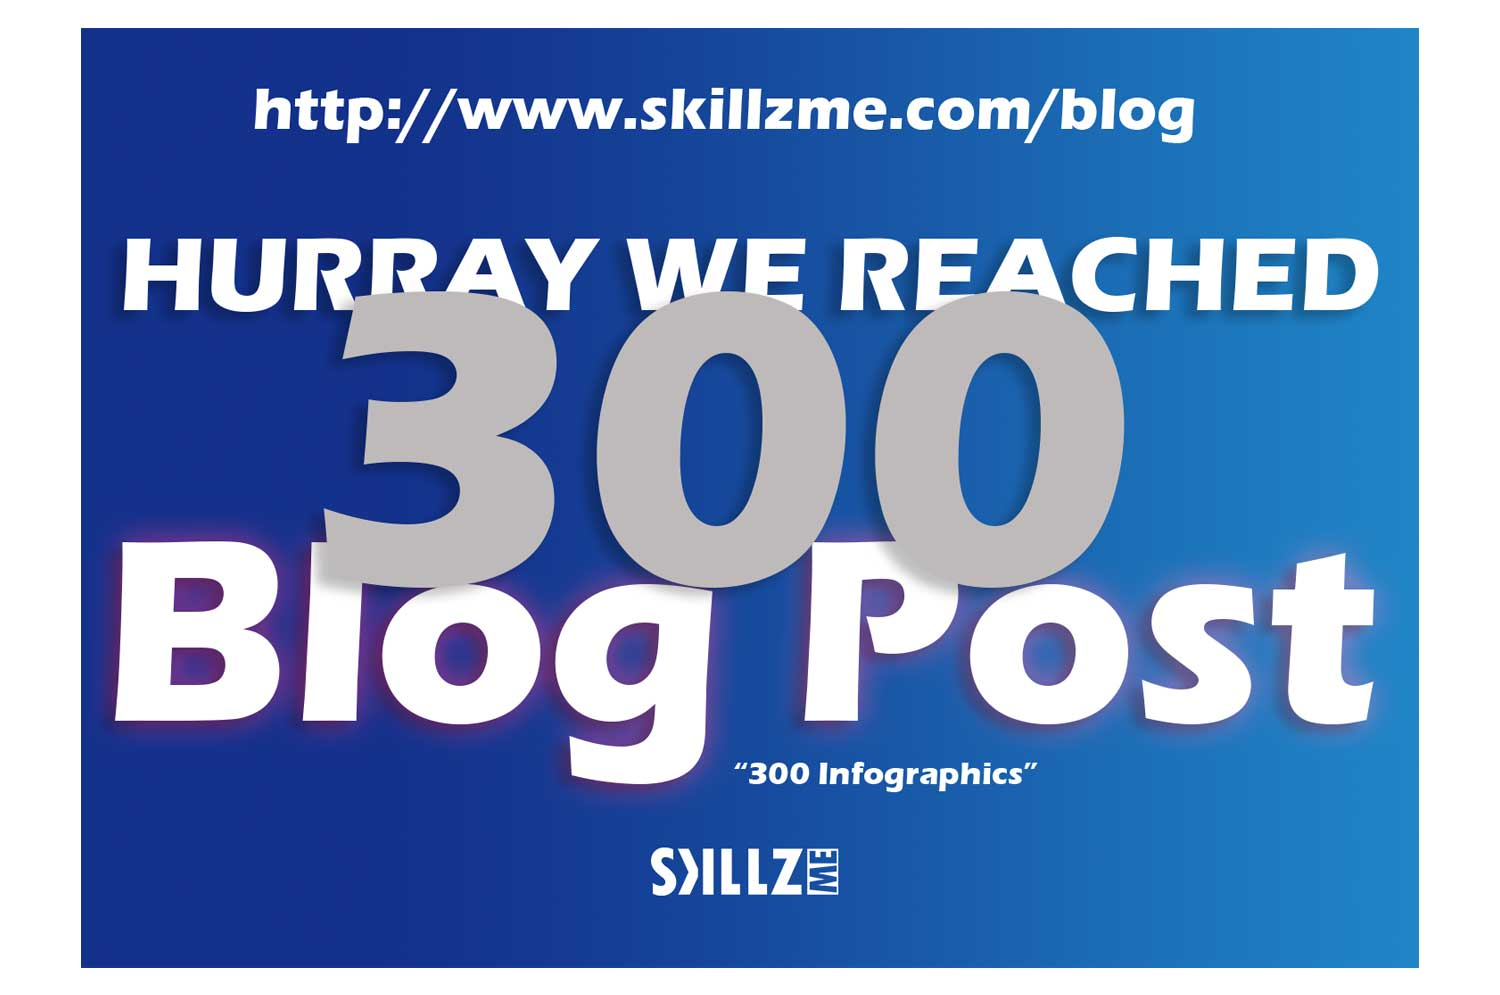 Skillz Middle East Infographics in 300 blog posts